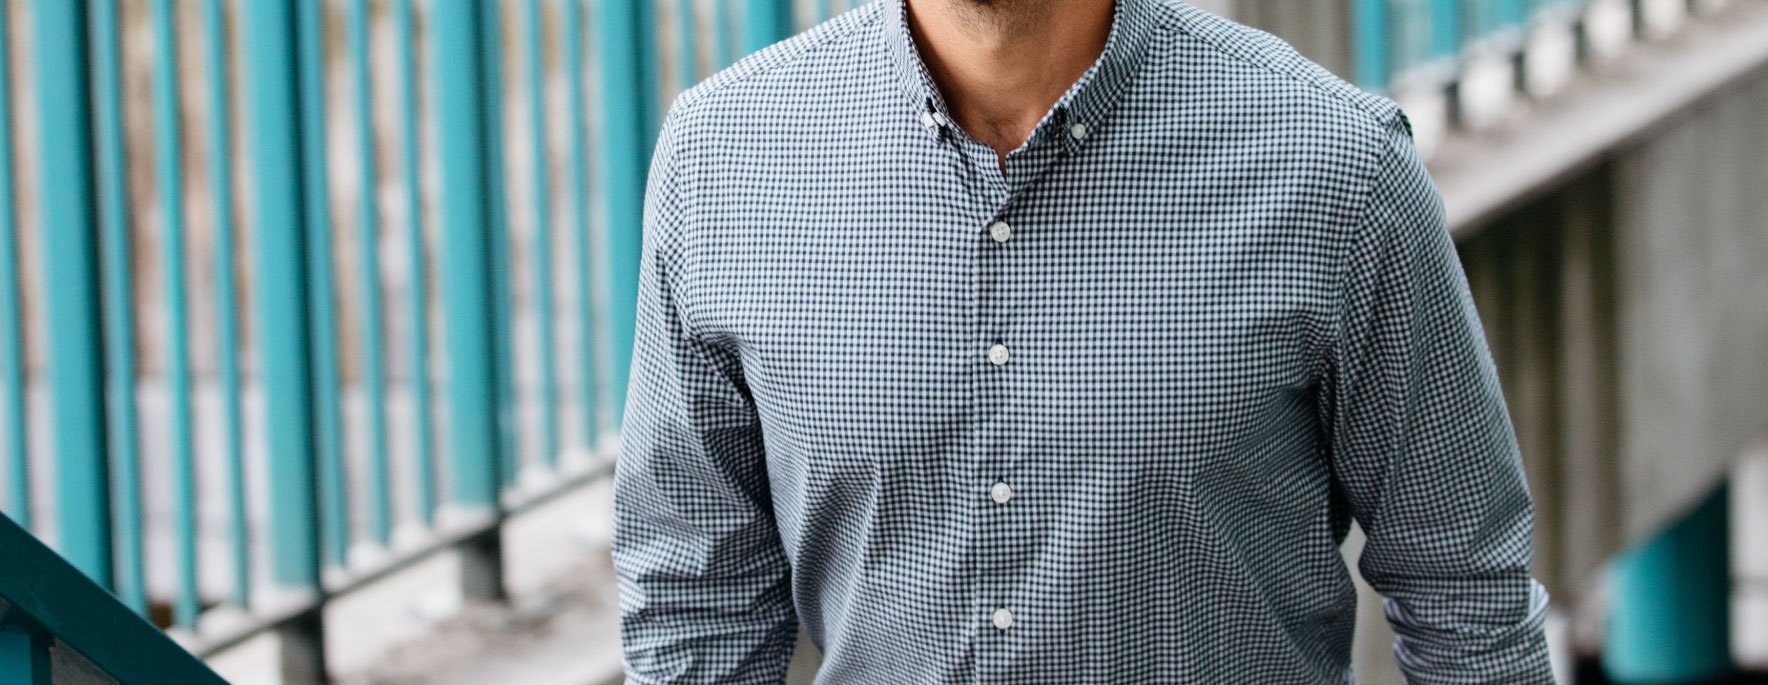 Men's performance button downs and polos collared shirts - tasc Performance